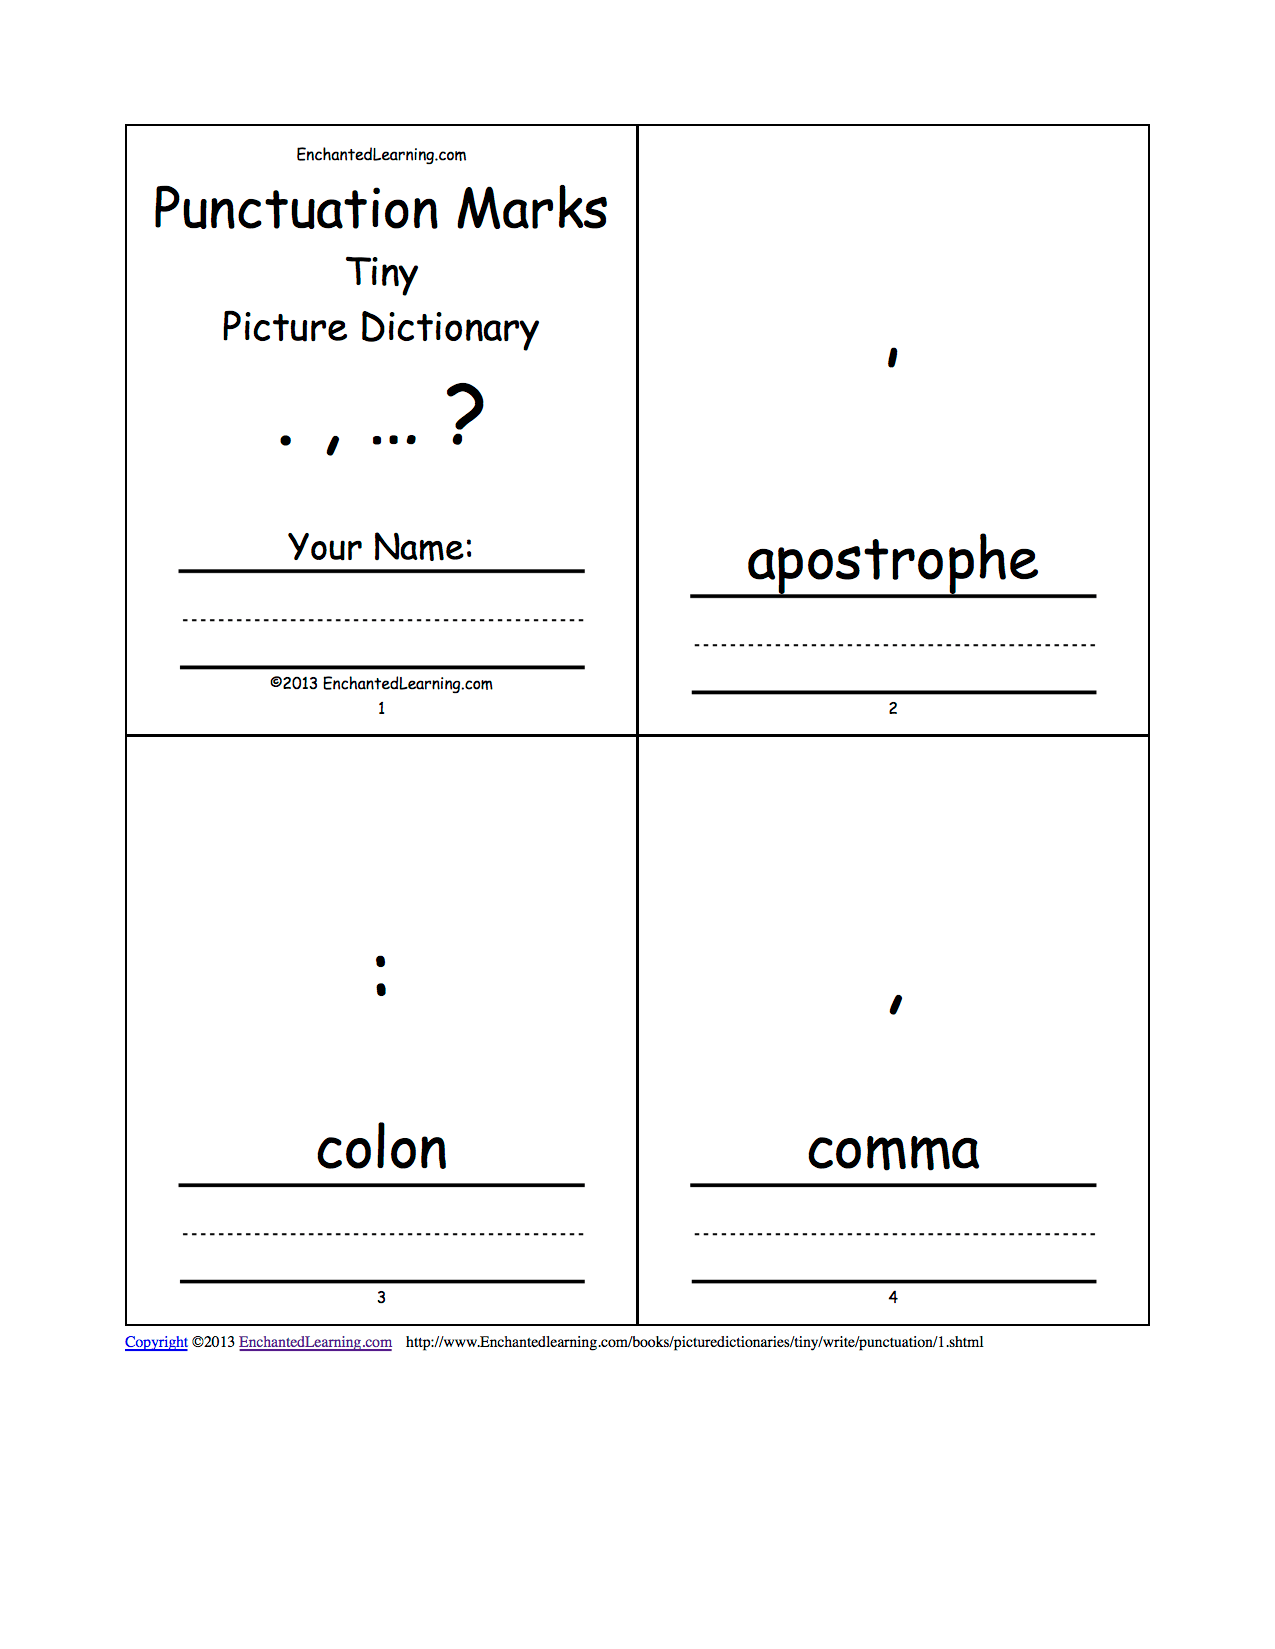 Punctuation Marks Tiny Picture Dictionary